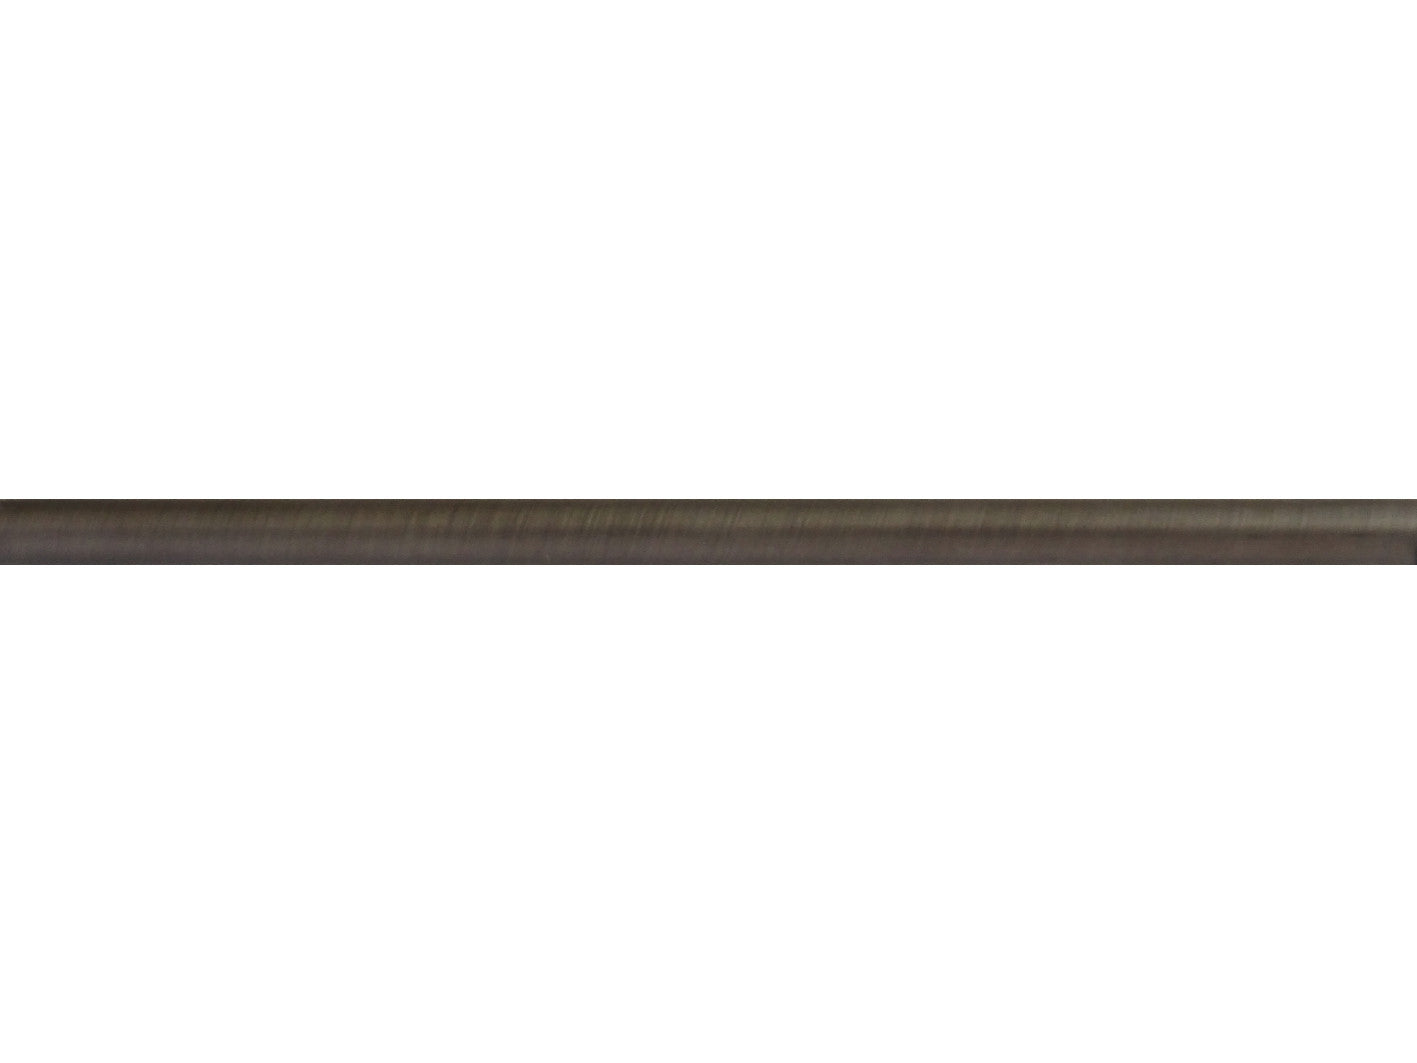 19mm bronze curtain pole